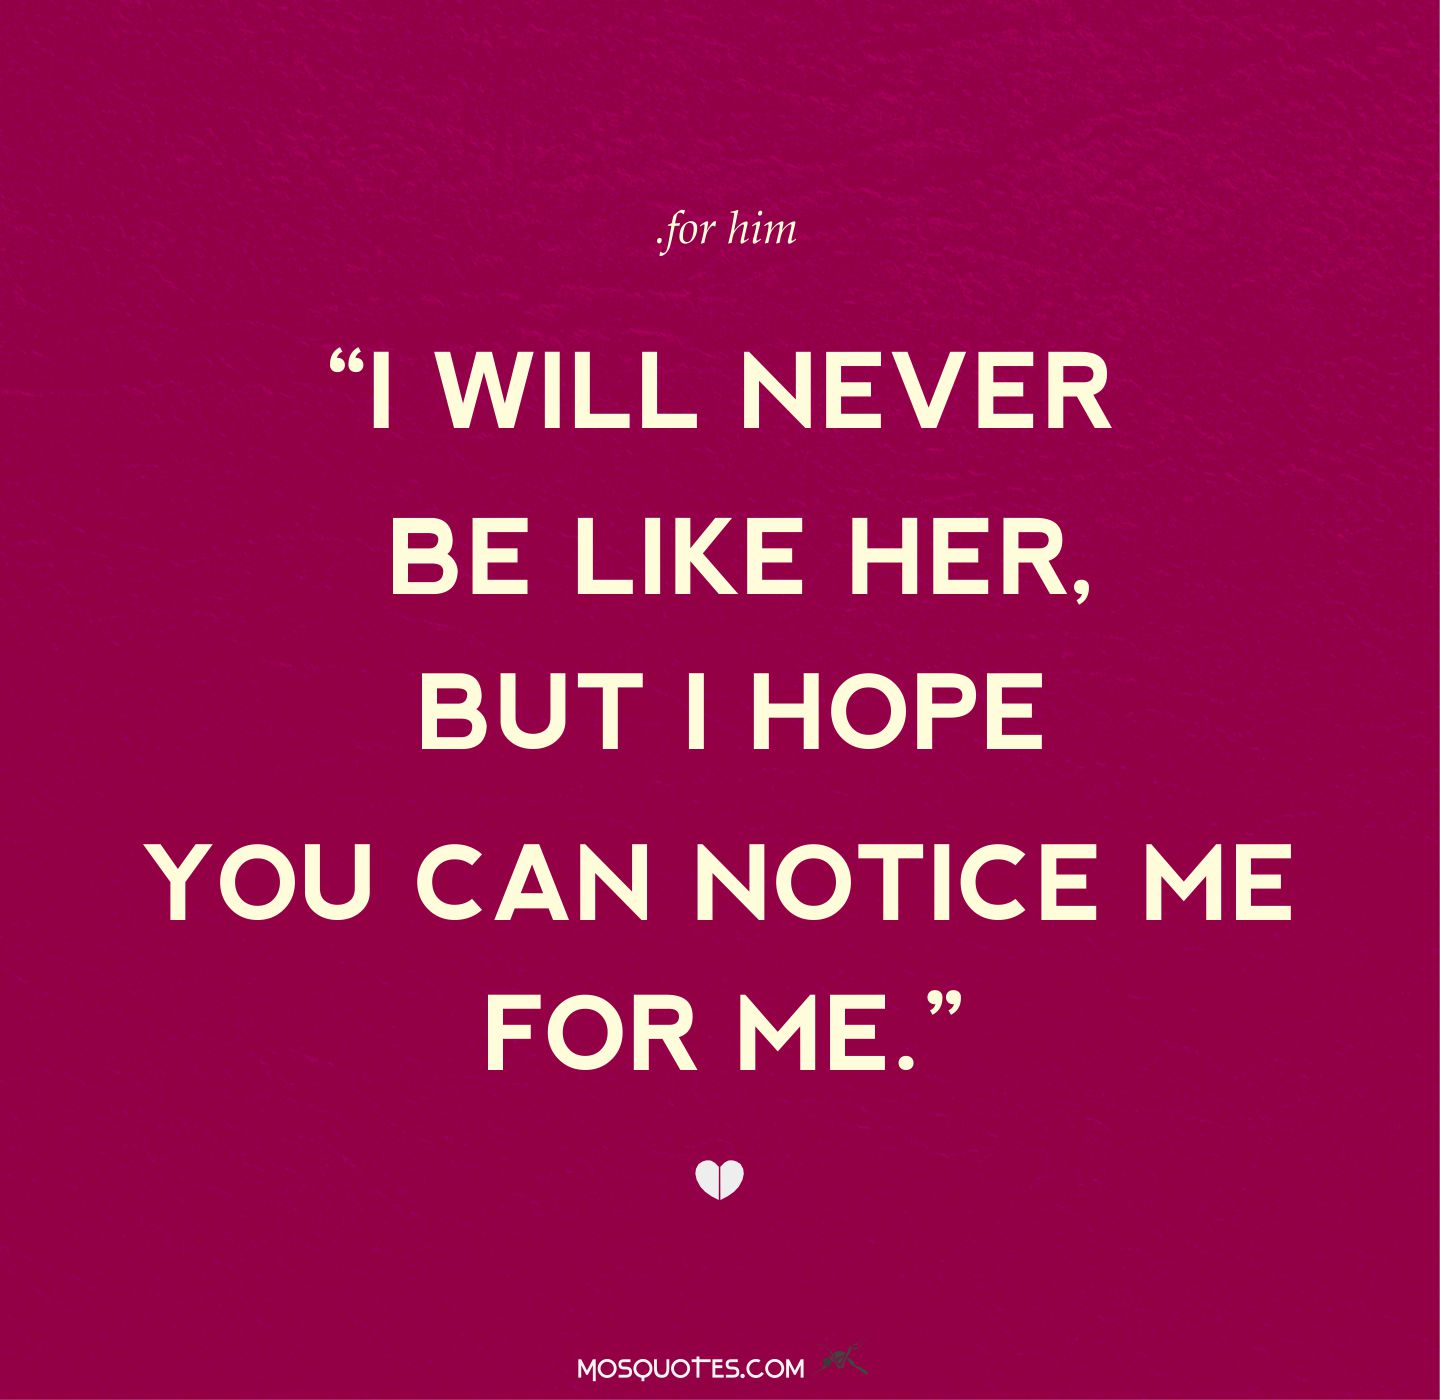 You Can Have Him: You Can Never Be Me Quotes. QuotesGram